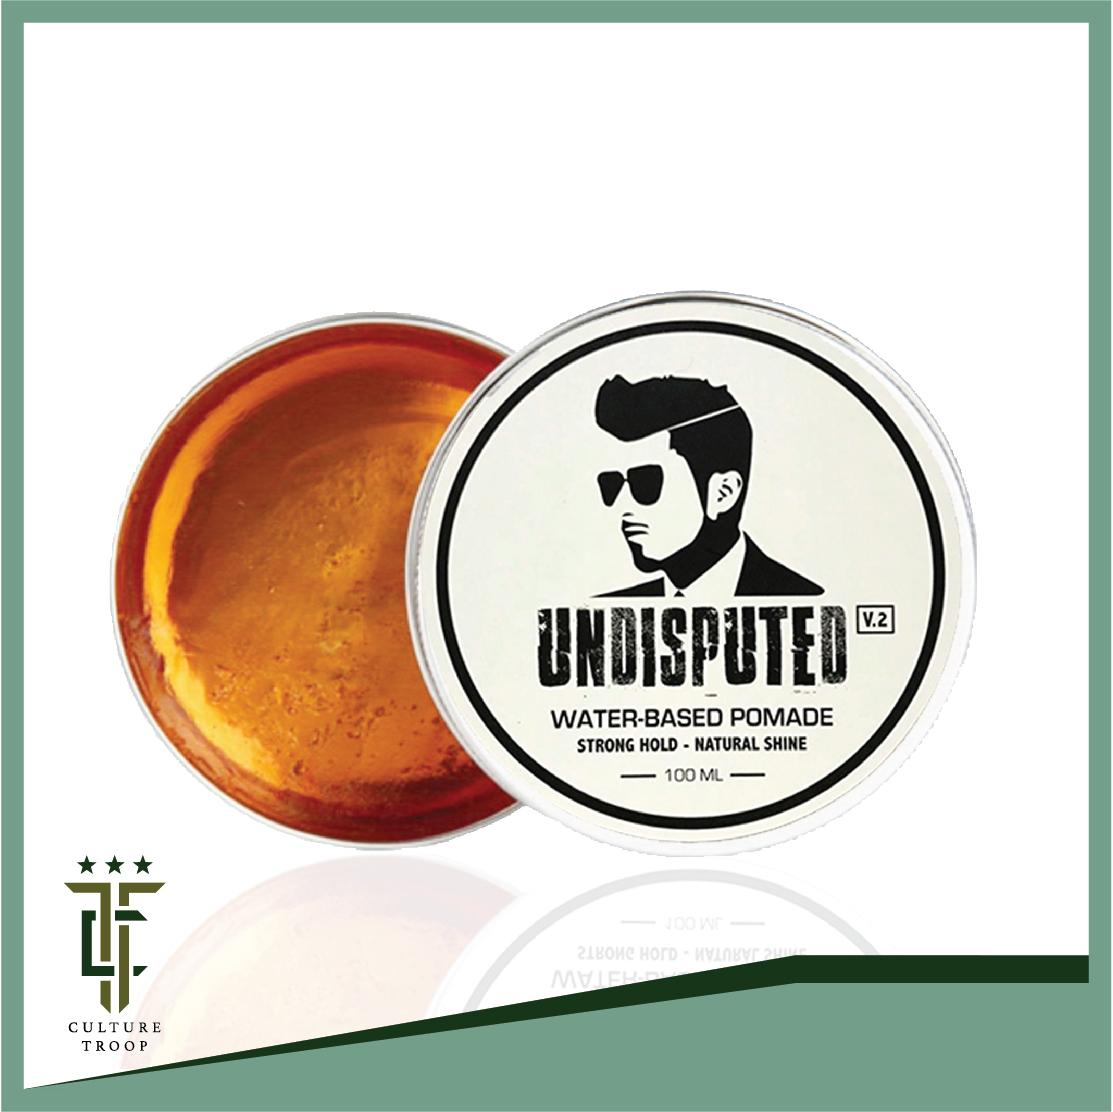 [free Shipping] Undisputed Pomade V2 Strong Hold Slim Design Water Solutble By Culture.troop.